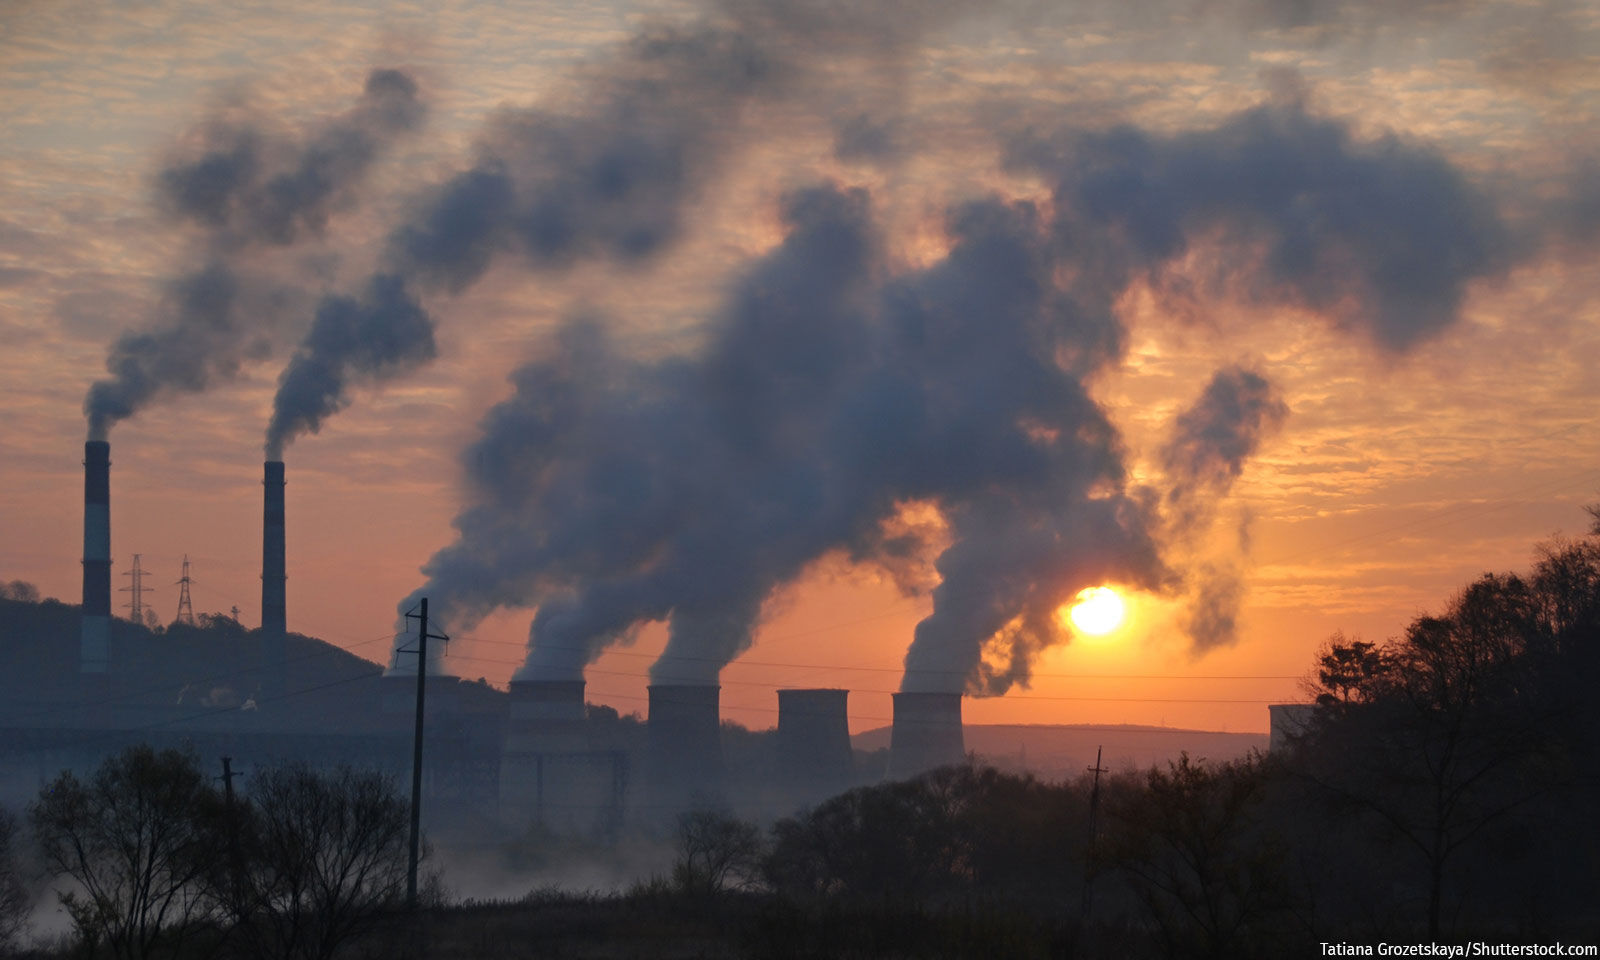 Balancing Environment Protection And Post-Pandemic Growth--Challenge For New Minister